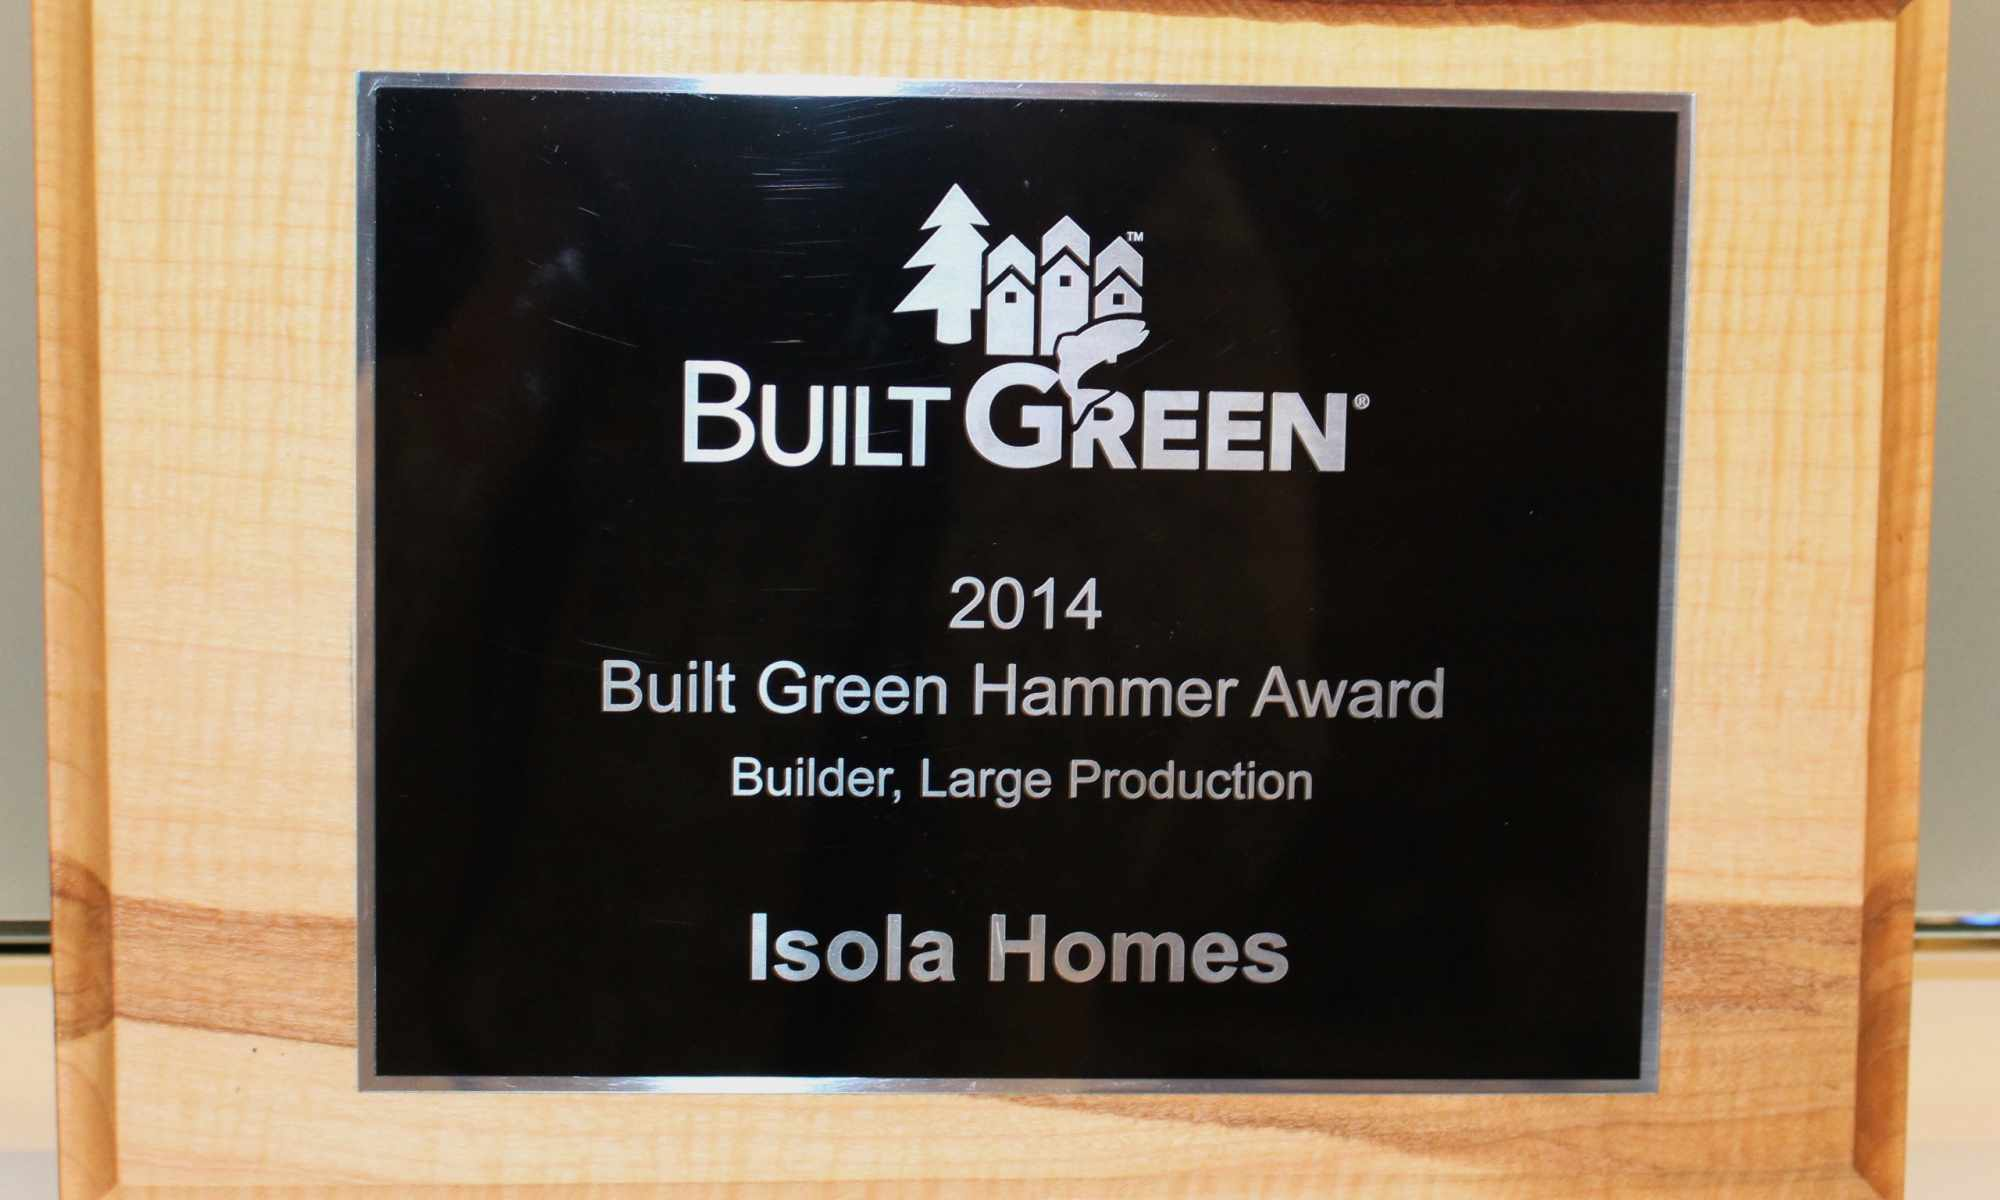 Isola Homes wins Built Green Hammer Award